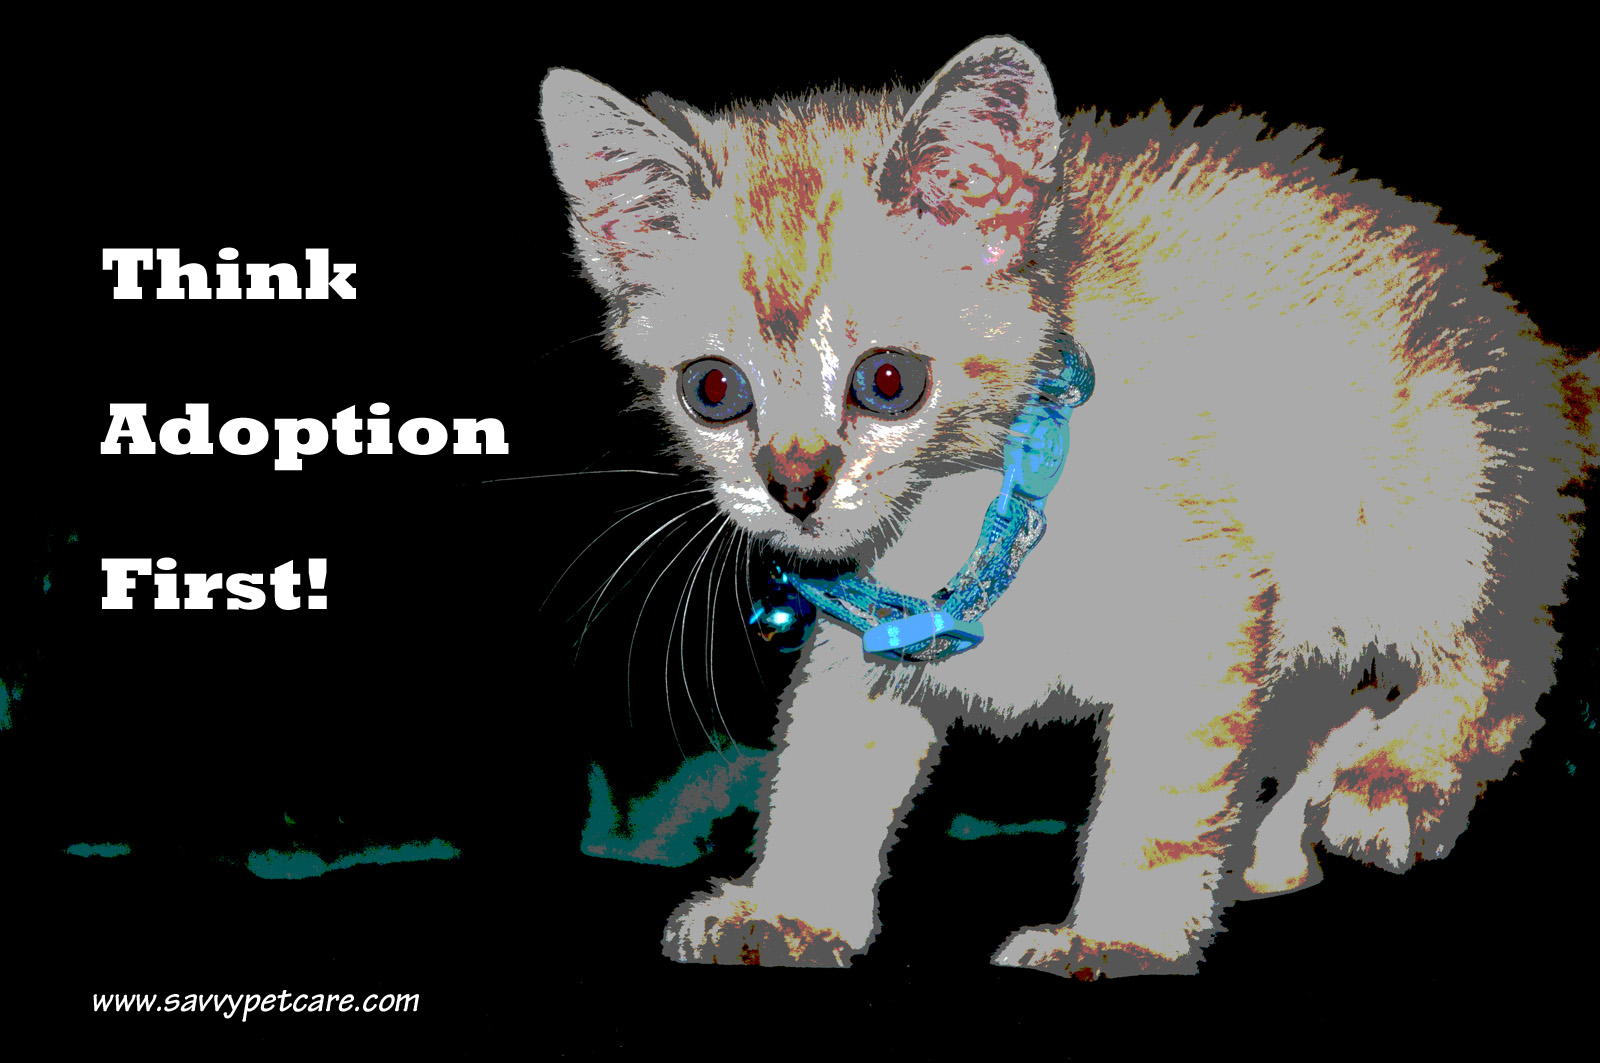 Wordless Wednesday: Think Adoption First!